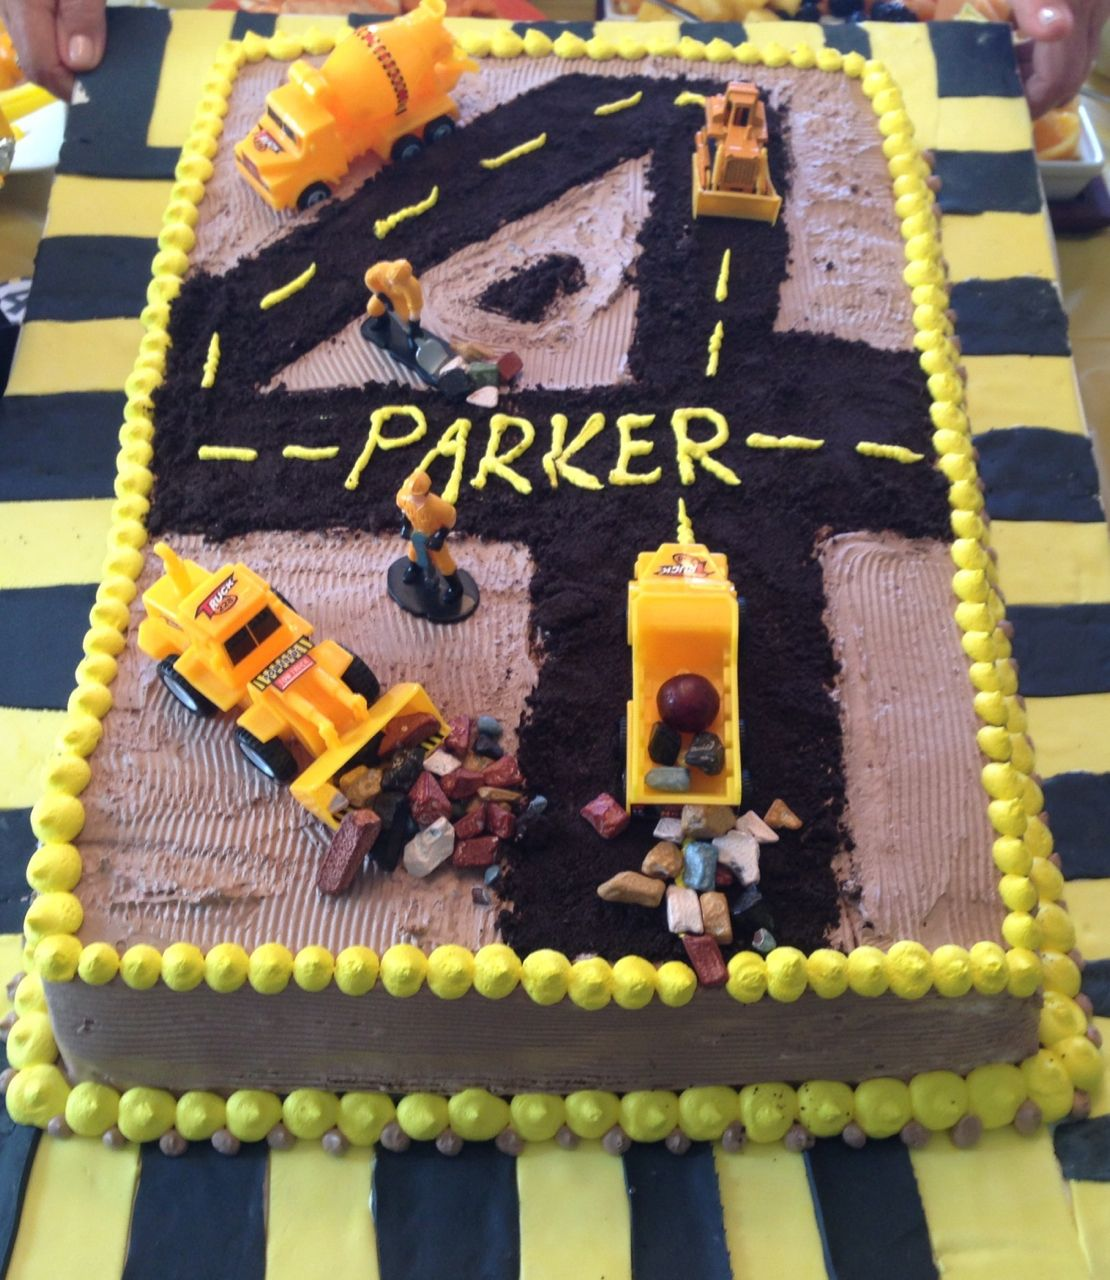 Construction Themed 4 Year Old Boy Birthday Cake I Think Should Make A Three